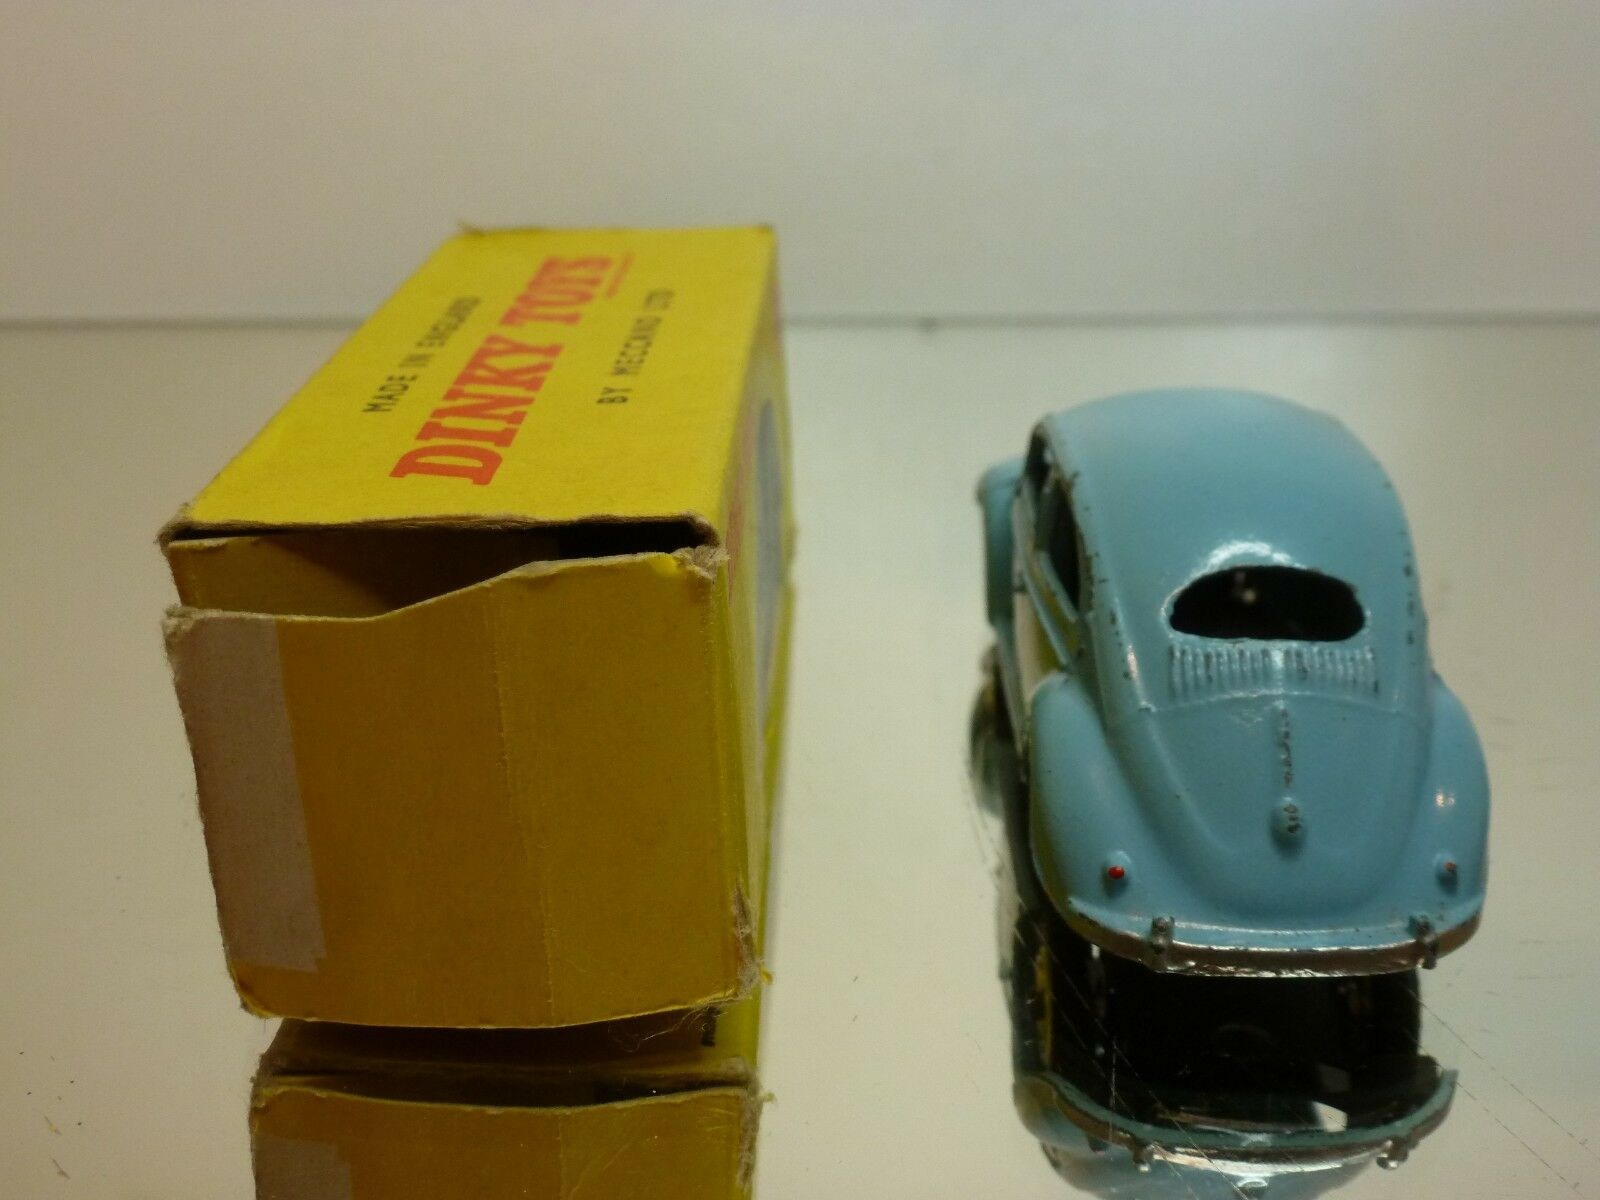 DINKY TOYS 181 181 181 VW VOLKSWAGEN BEETLE - azul 1 43 - GOOD CONDITION IN FAIR BOX f3a369